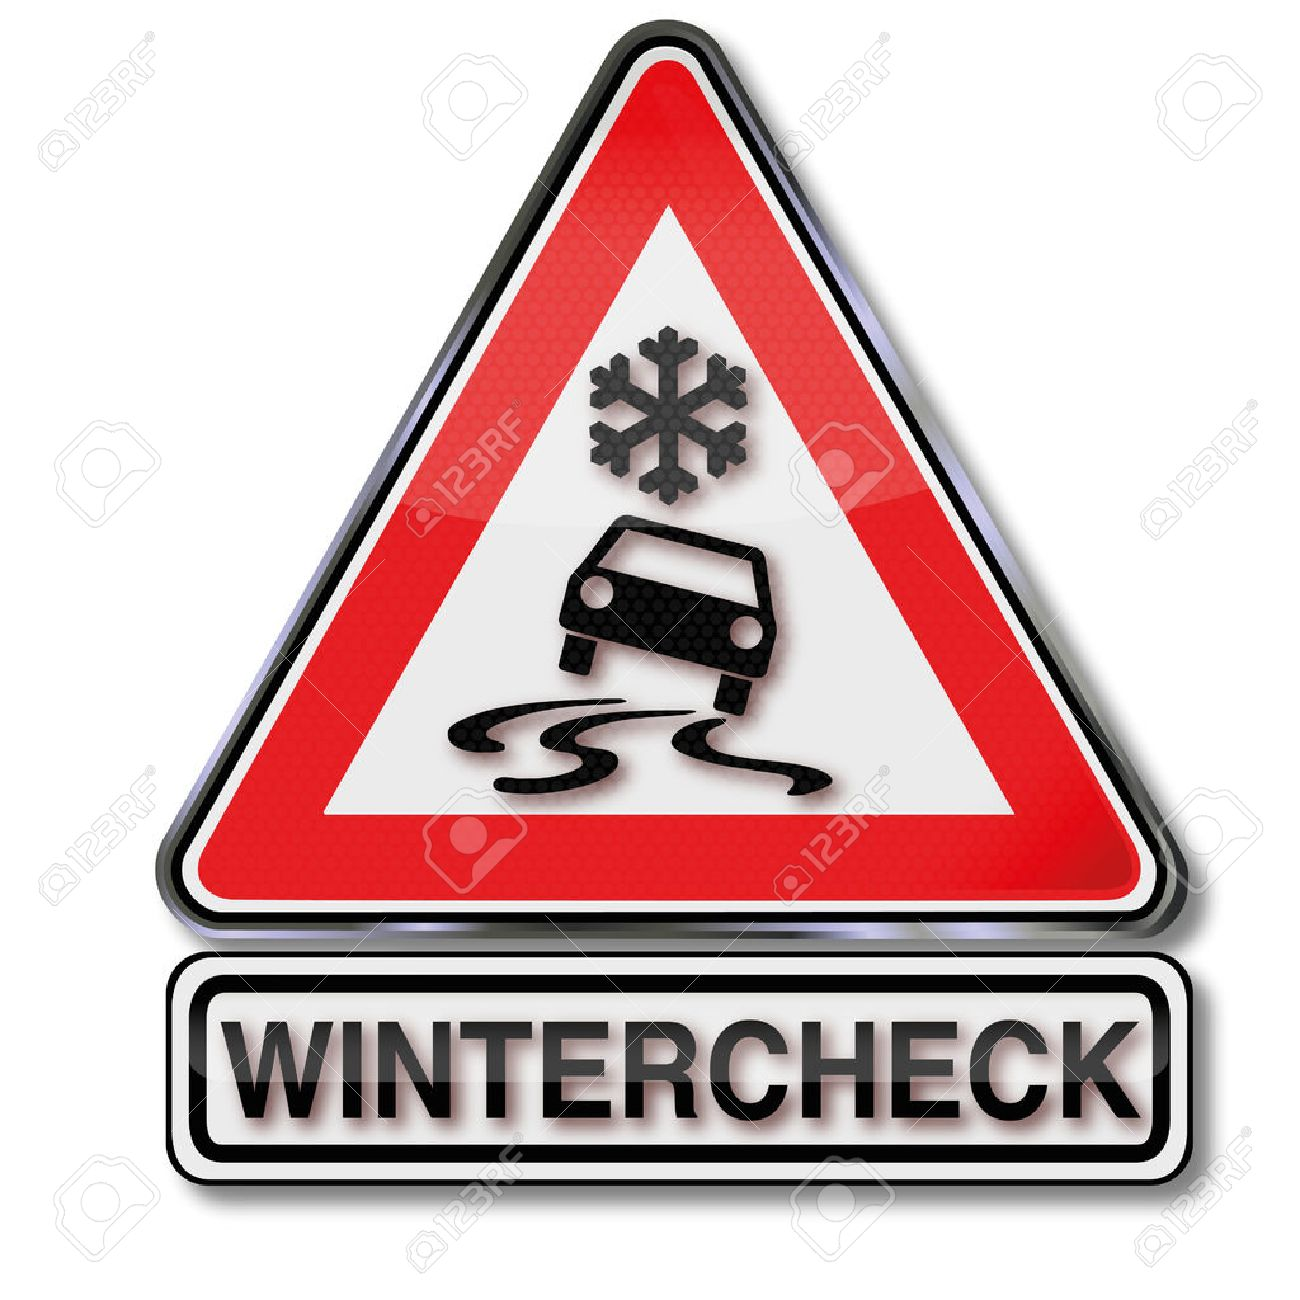 Sign winter check for your car - 32550681